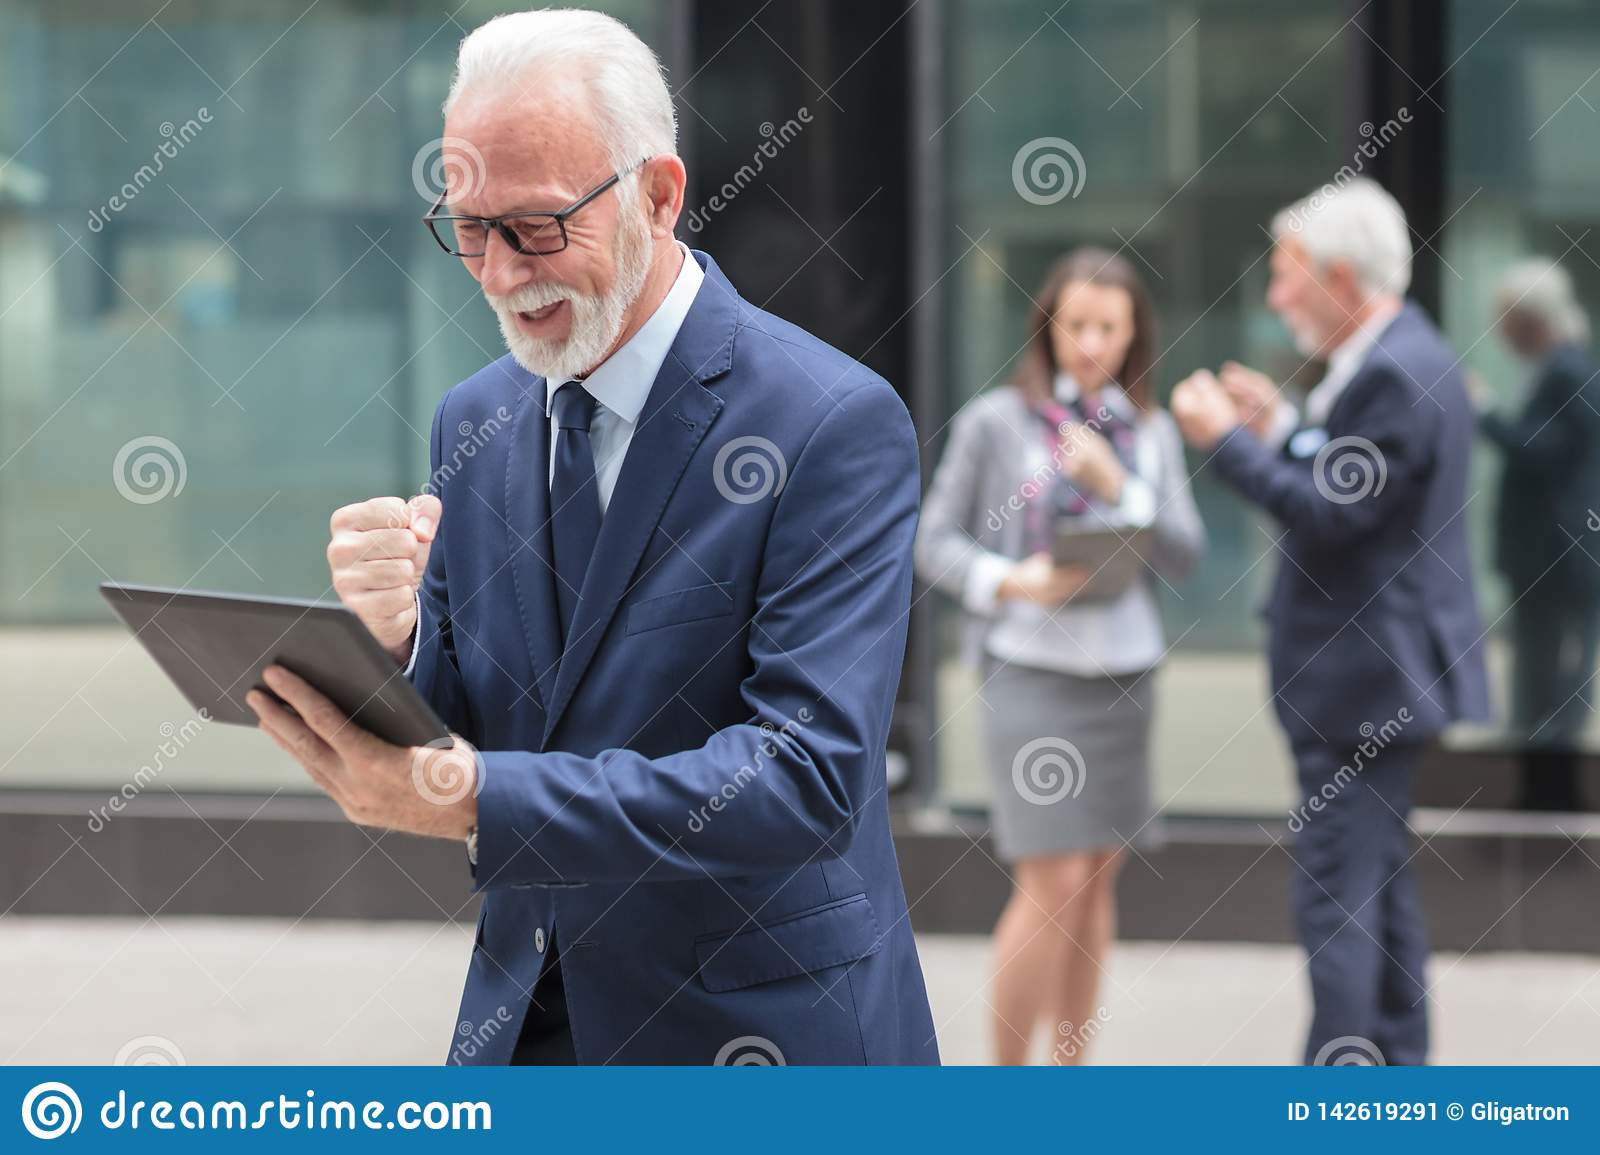 Happy senior businessman using tablet, standing in front of an office building